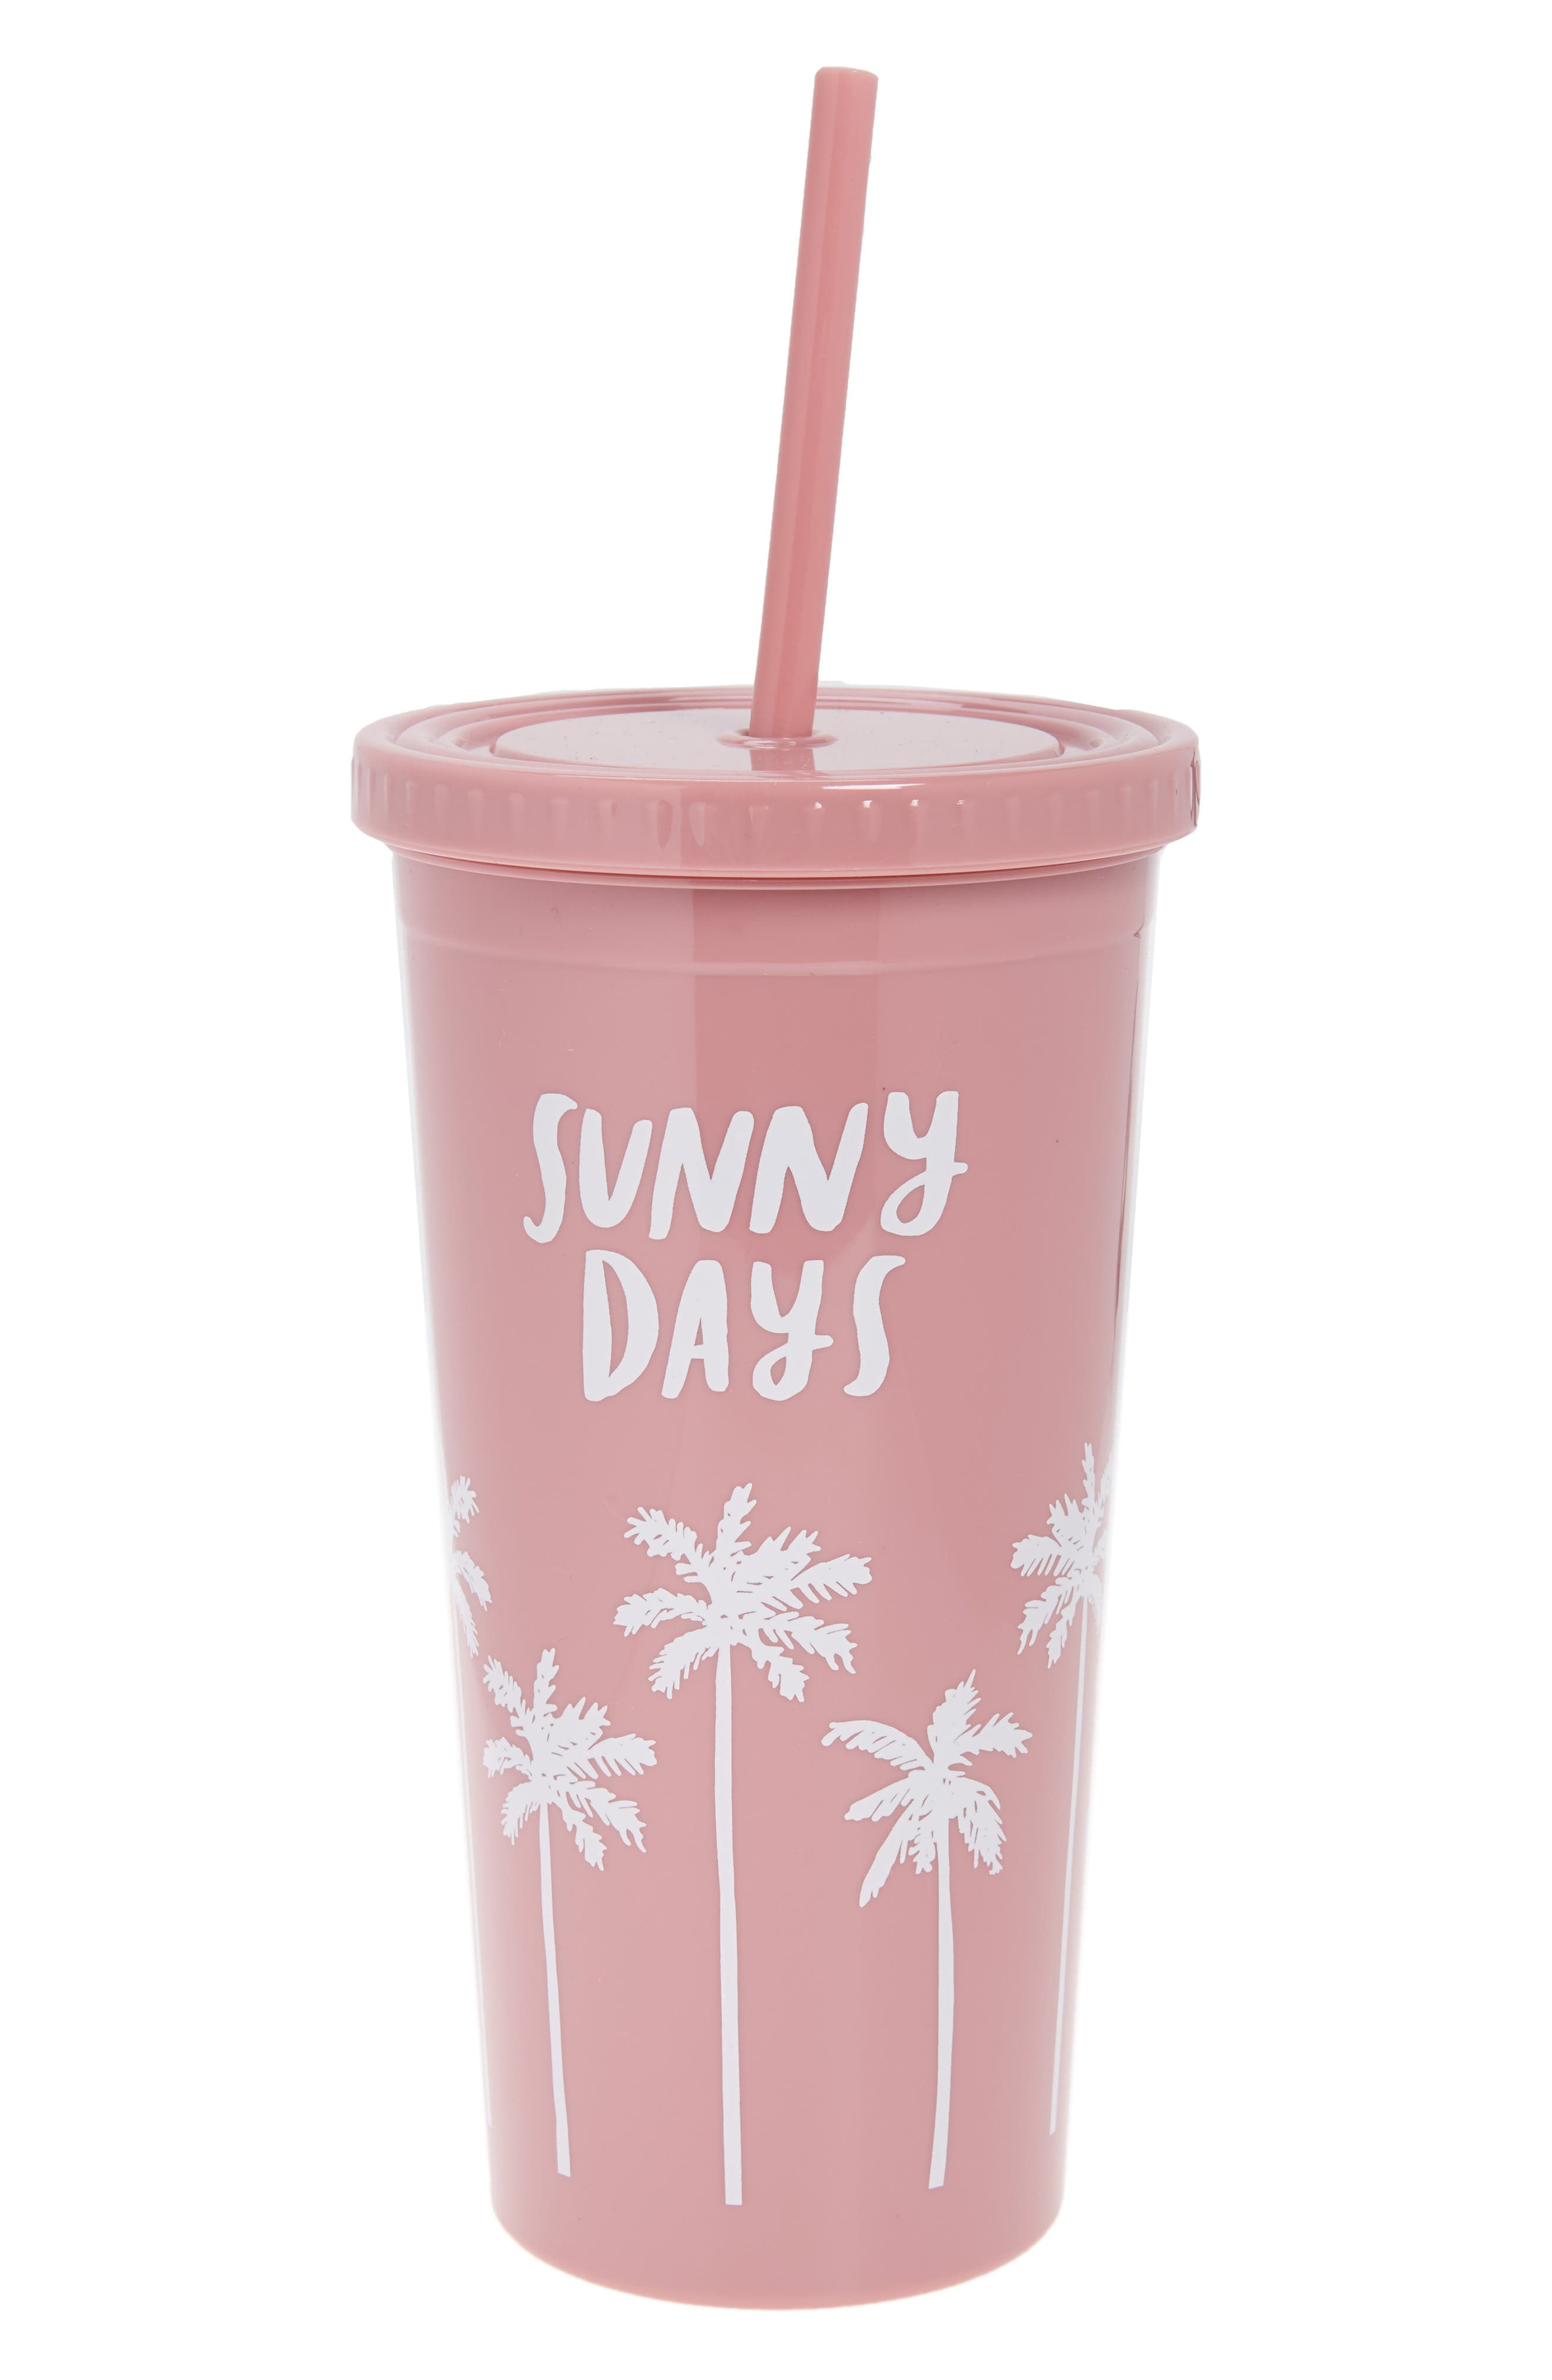 The Created Co. Sunny Days Tumbler & Straw